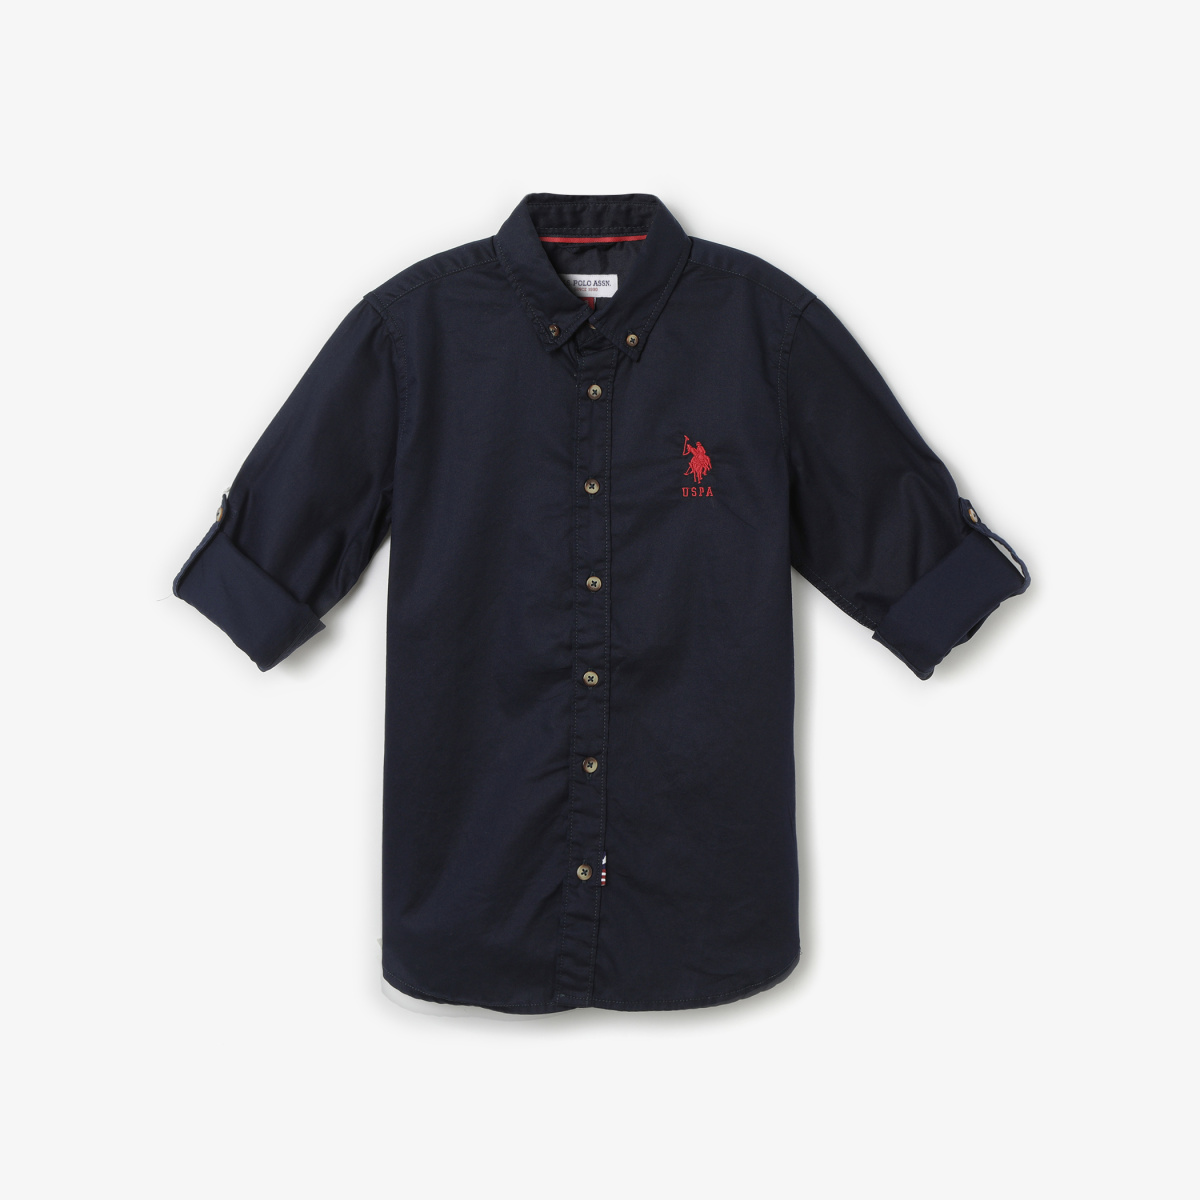 U.S. POLO ASSN. KIDS Solid Shirt with Button-Down Collar